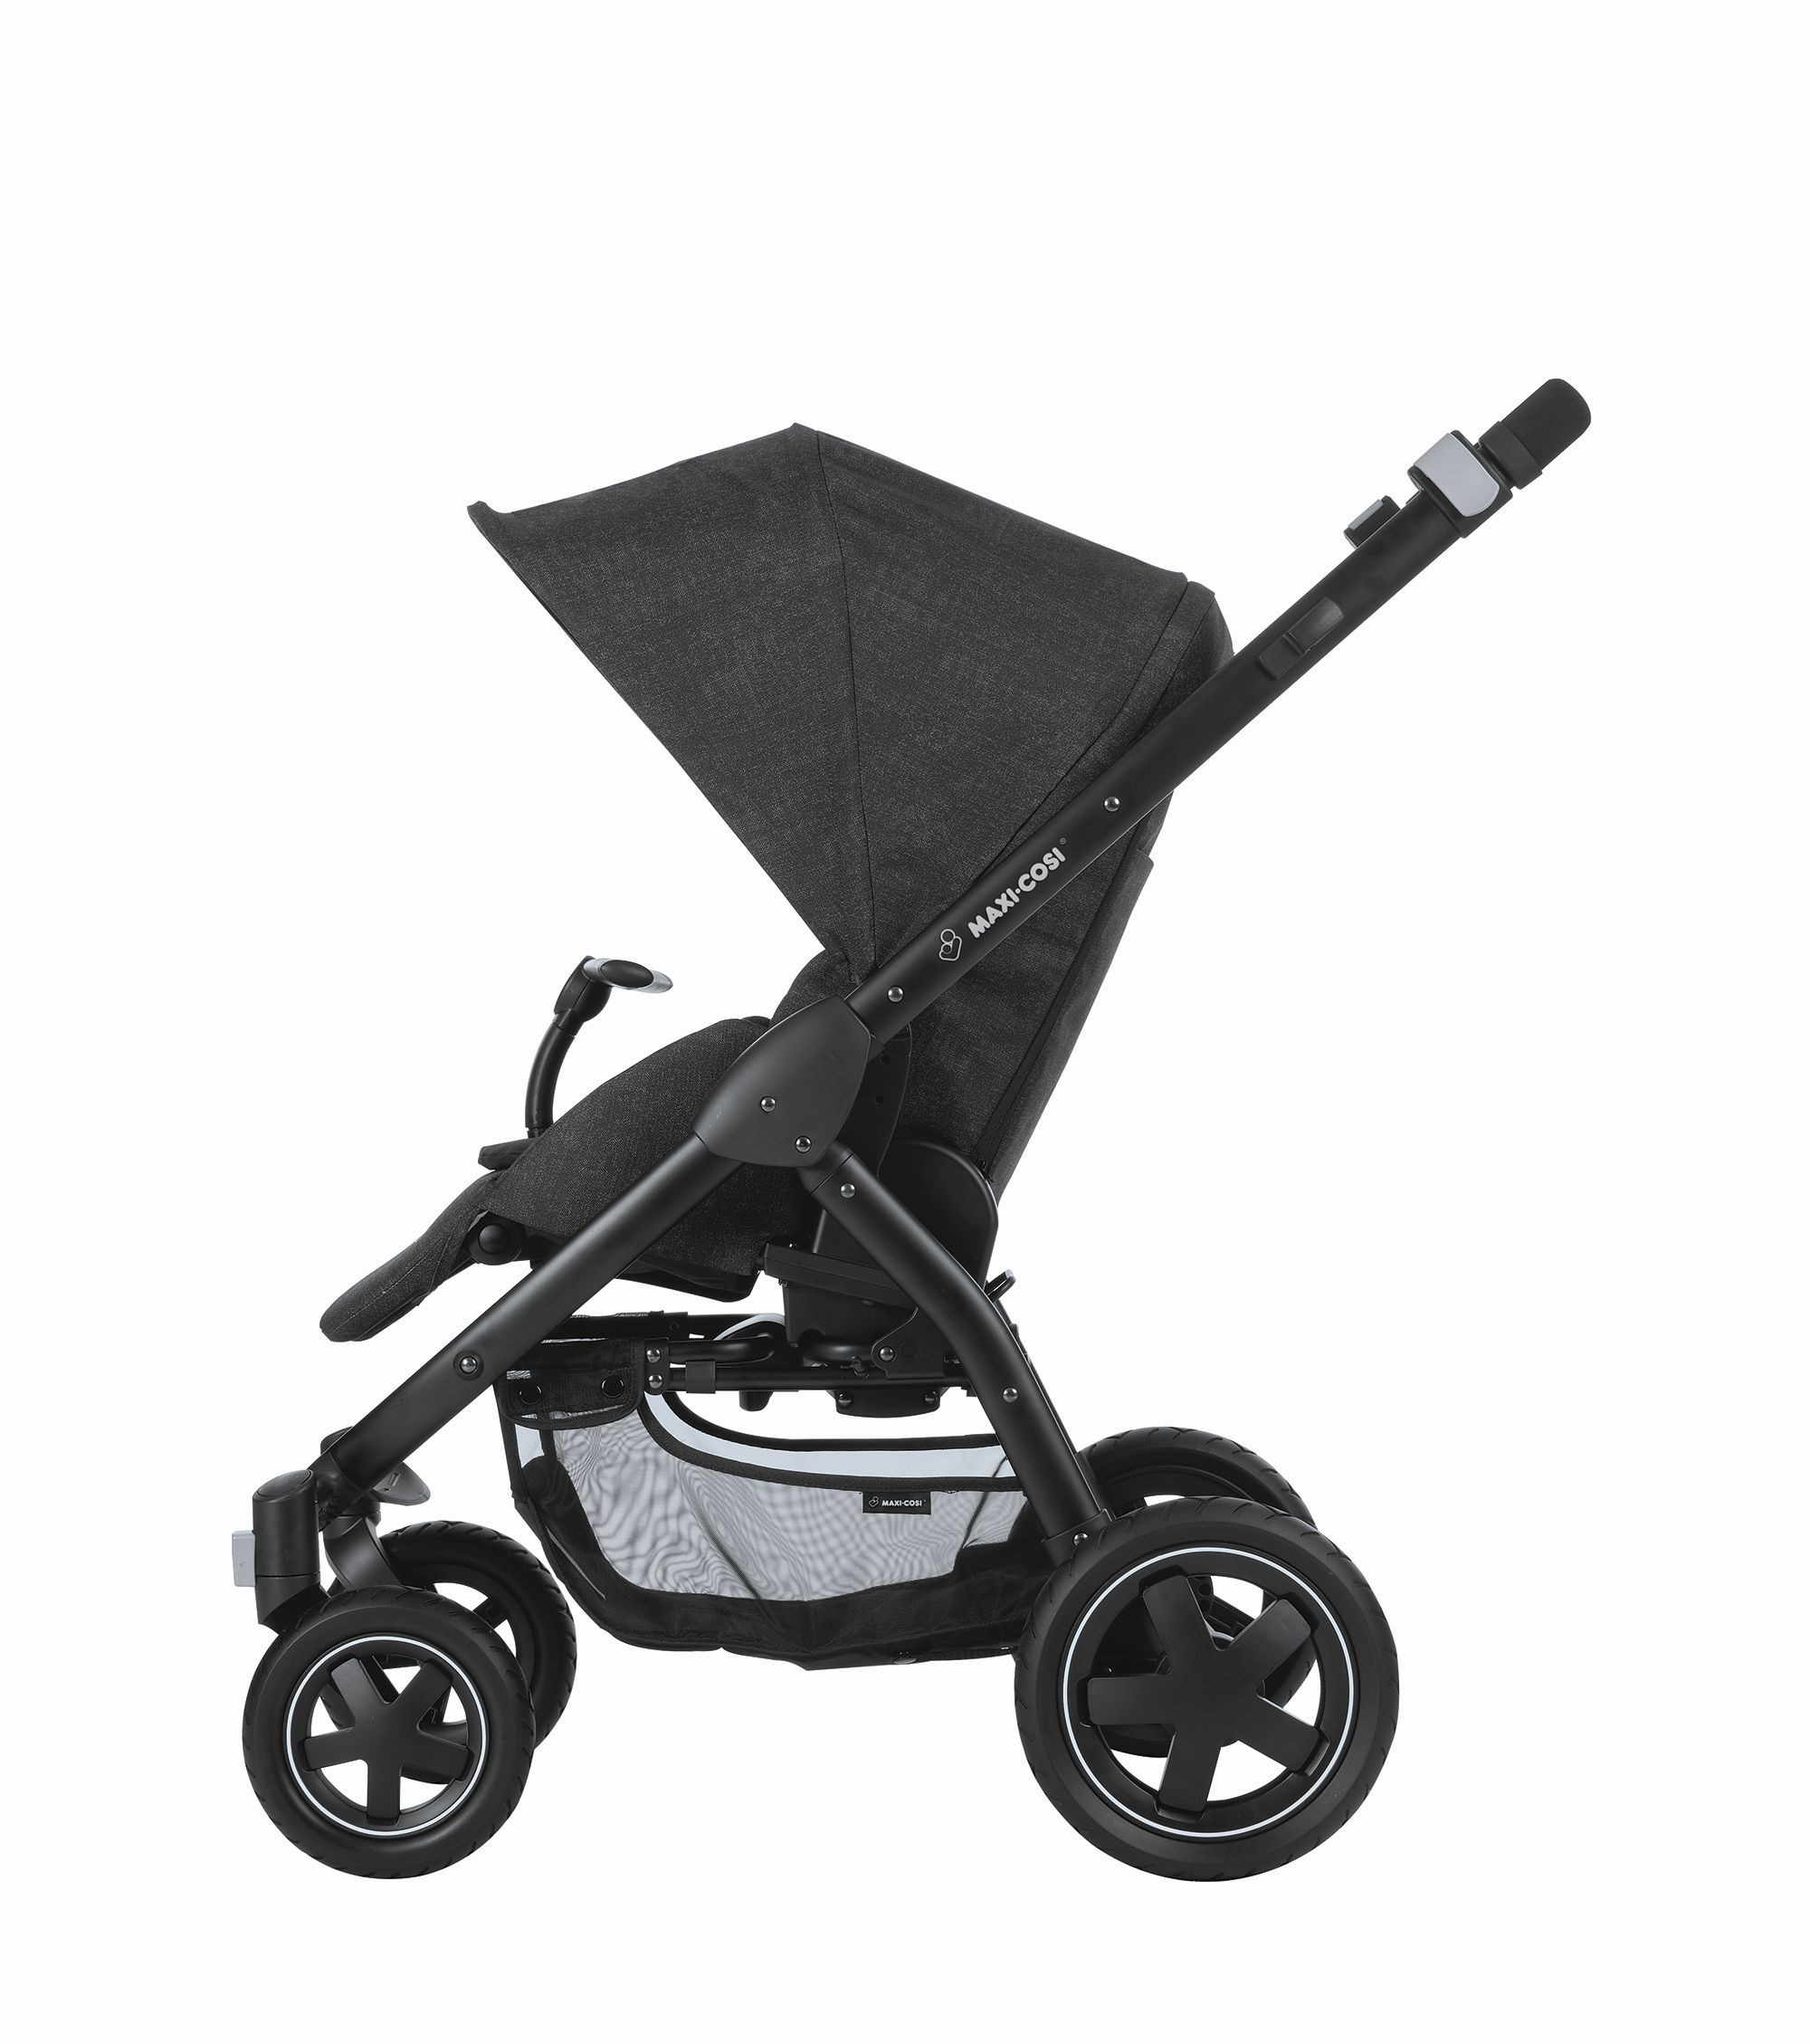 maxi cosi stroller stella 2019 nomad black buy at. Black Bedroom Furniture Sets. Home Design Ideas